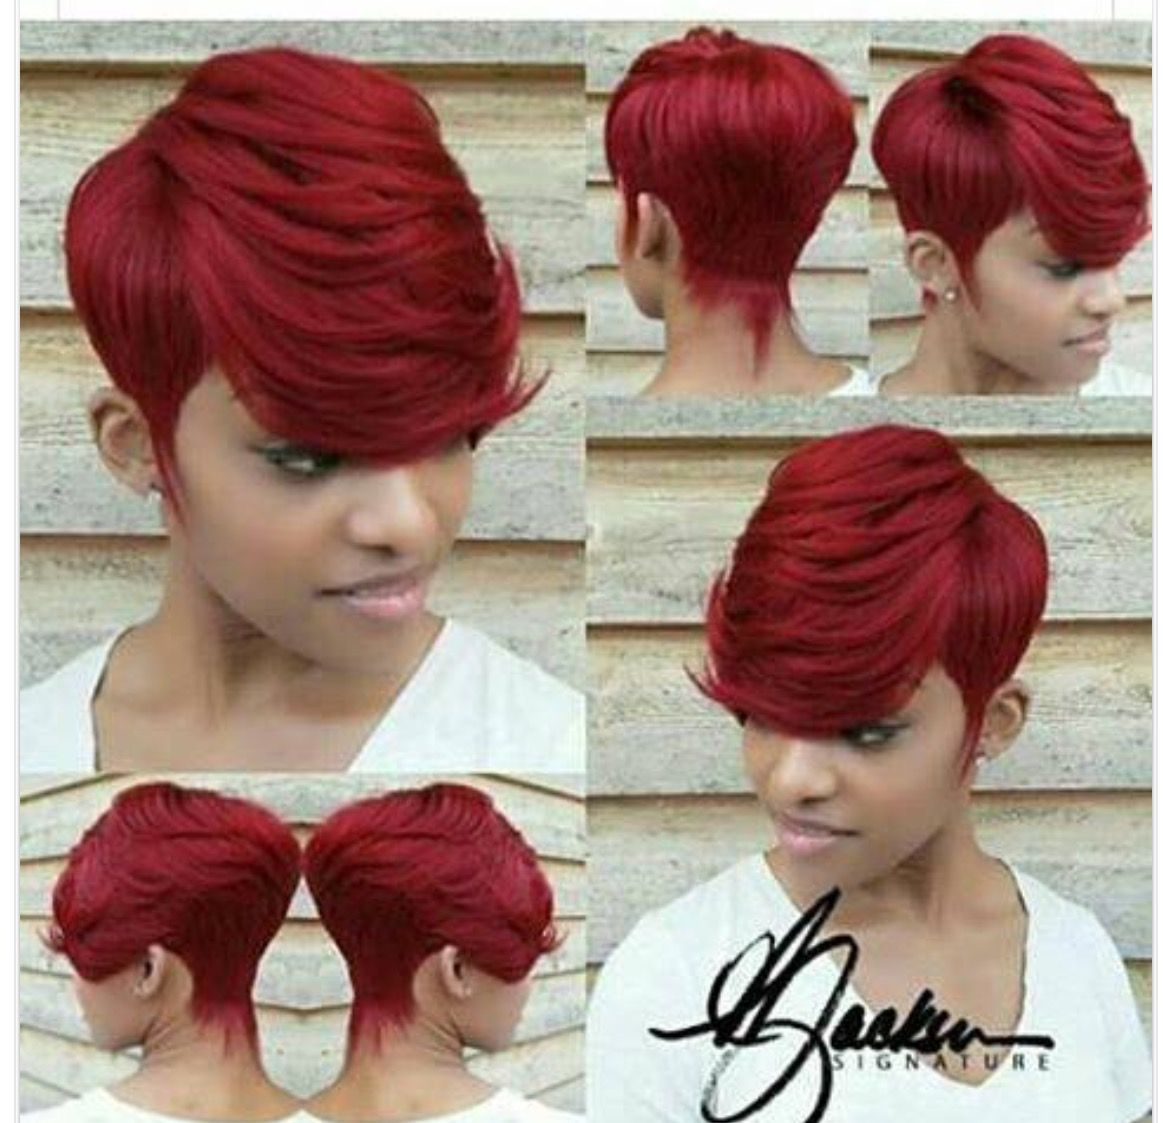 Son graduated  Quick weave hairstyles, Short red hair, Sassy hair